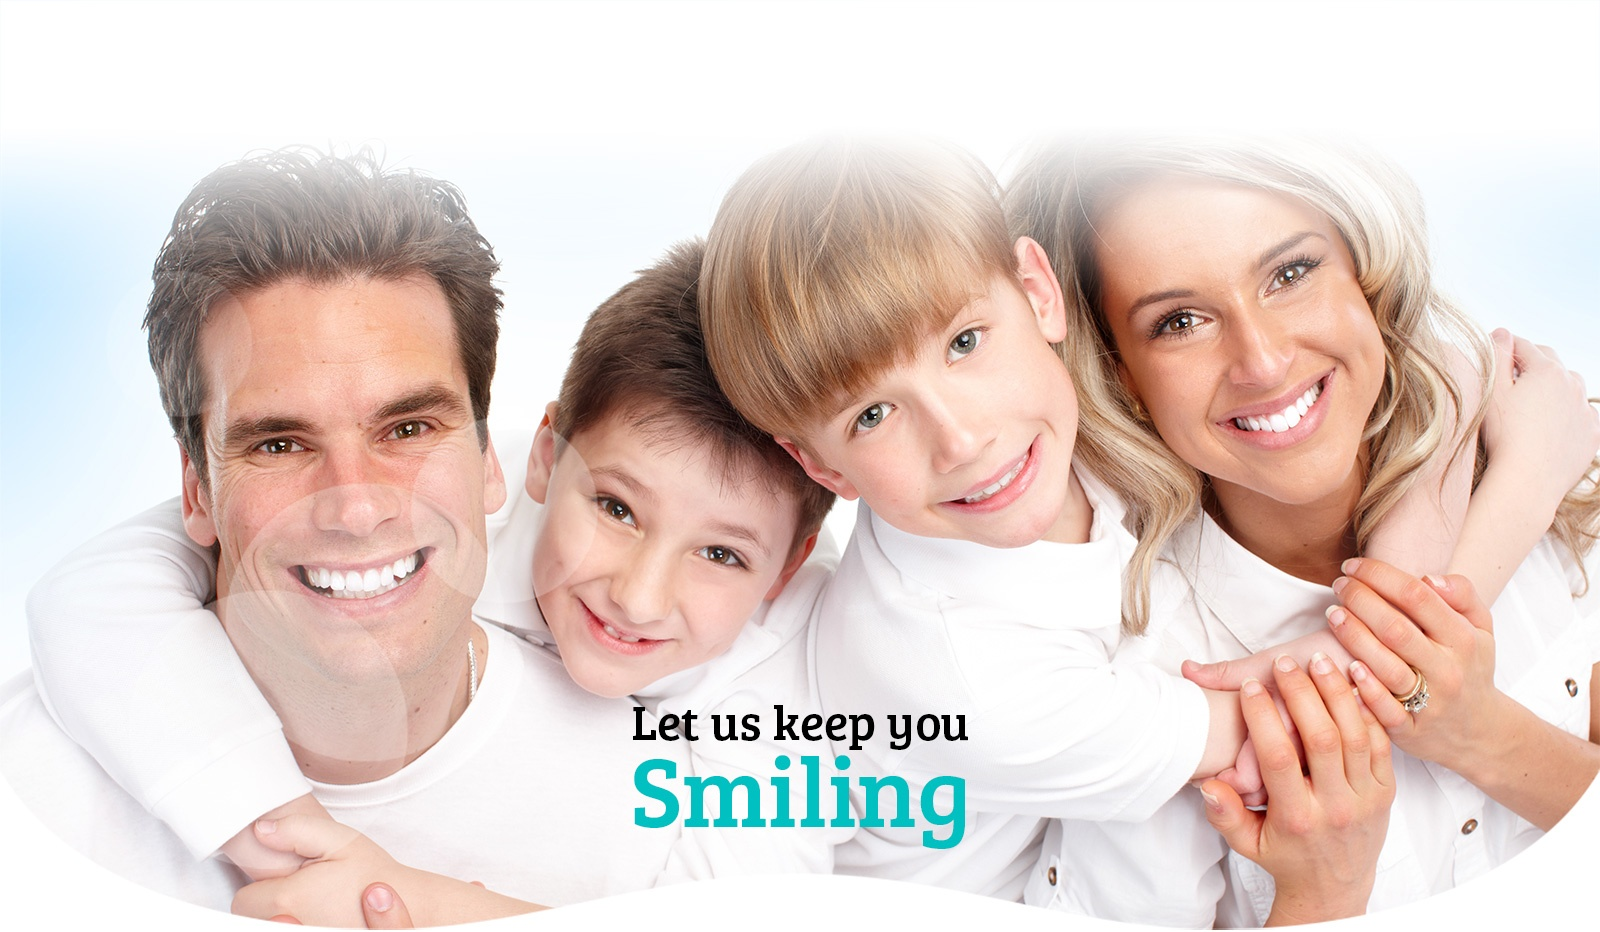 Let us Keep you Smiling - Dental Care Services Toronto at Dentists on Bloor